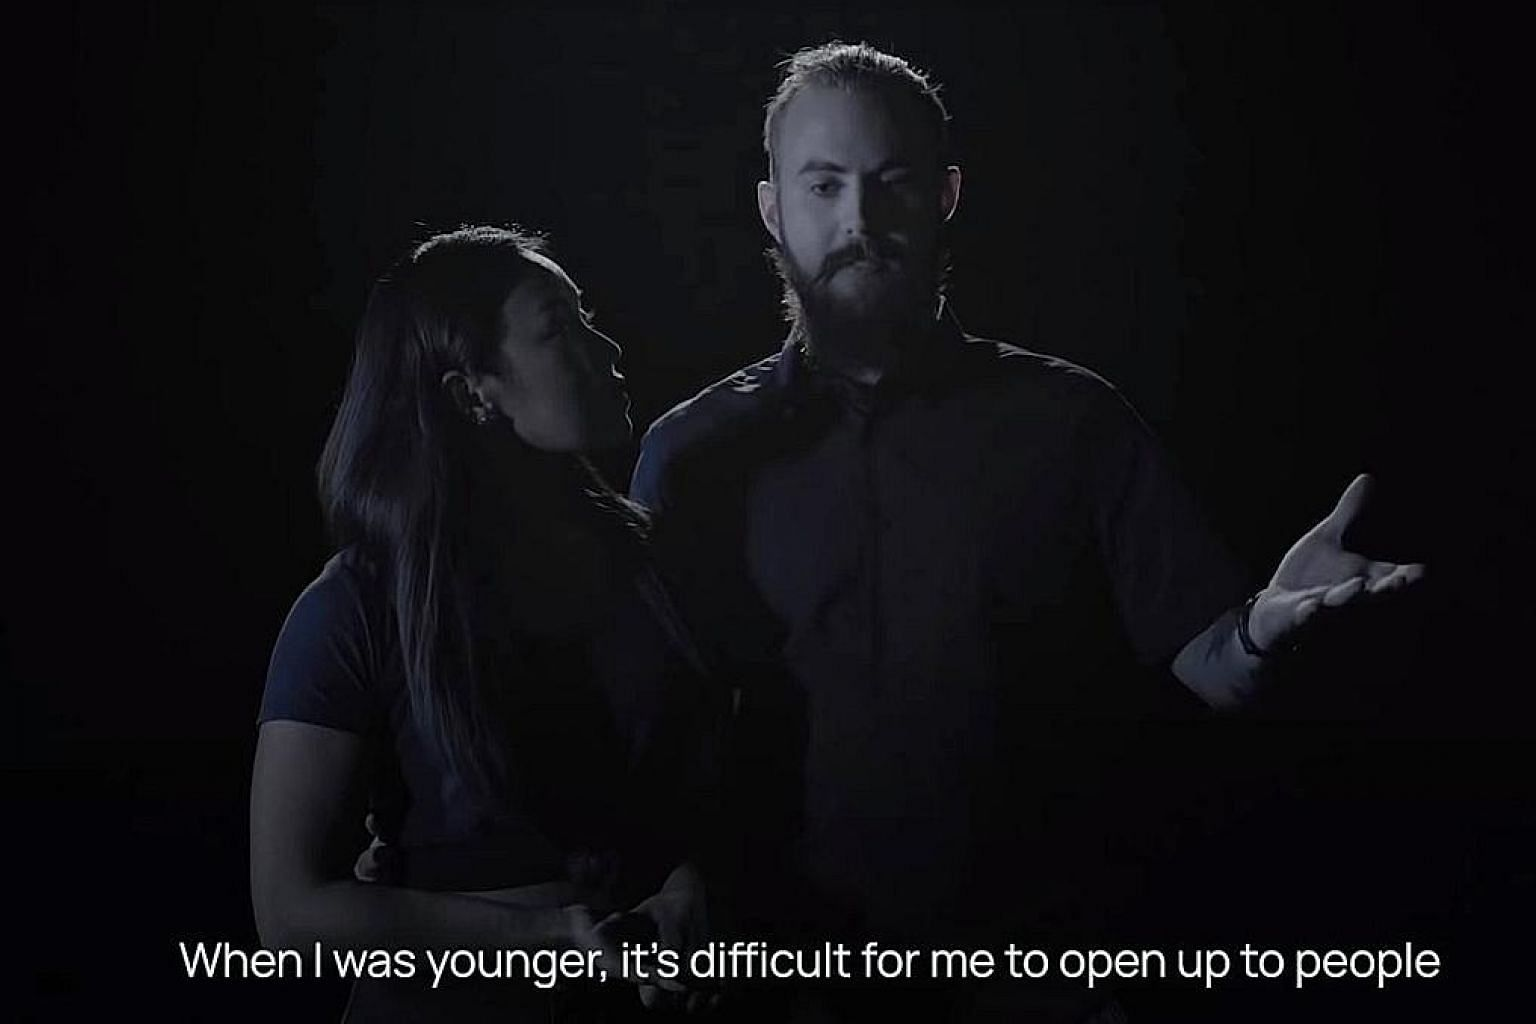 A screengrab of Mr Matthew Wong-Stewart, 26, talking about his struggles with mental health issues in a video for Samaritans of Singapore's #SuicideSeesNoGender campaign. With him is his wife, Singaporean business owner Cherie Wong-Stewart, 30. The c